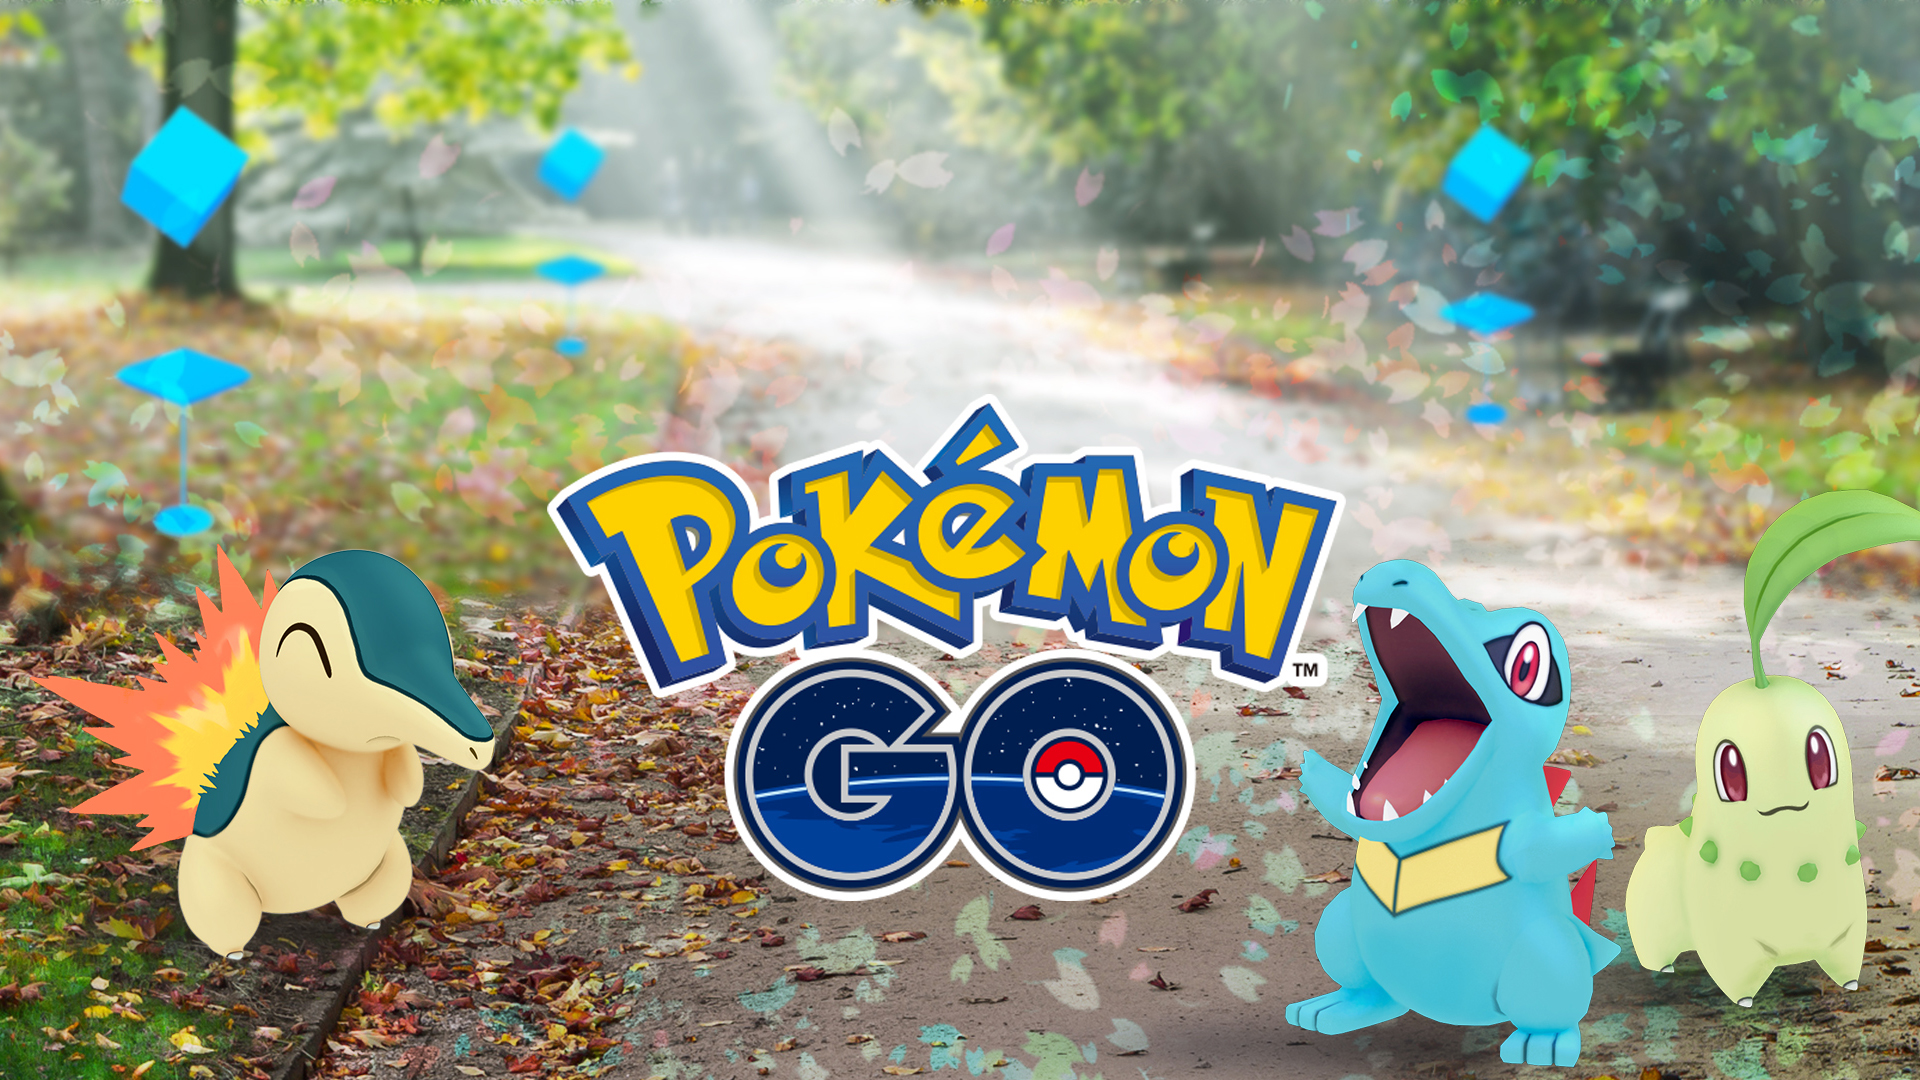 Pokemon Go Gen 2 release date is this week, here's what to expect from the update